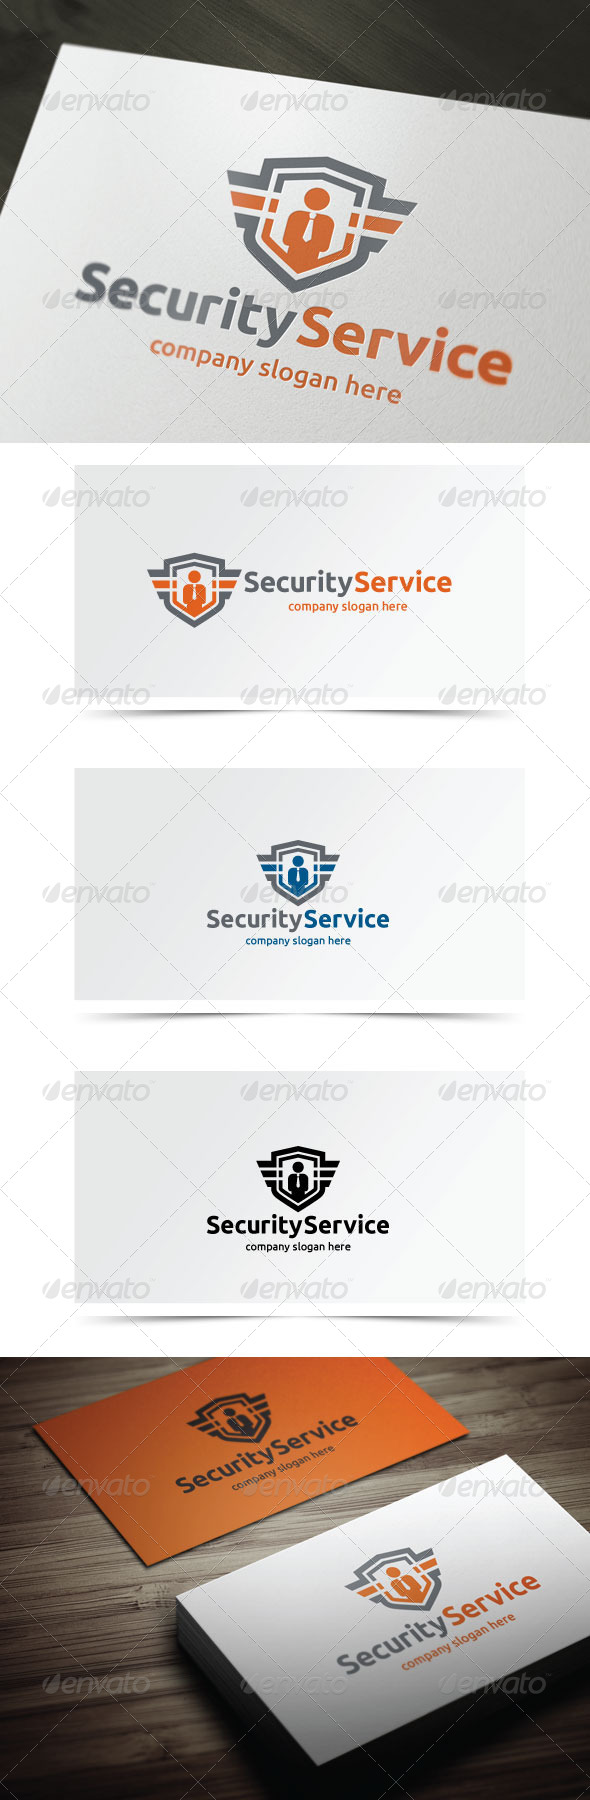 GraphicRiver Security Service 6202217